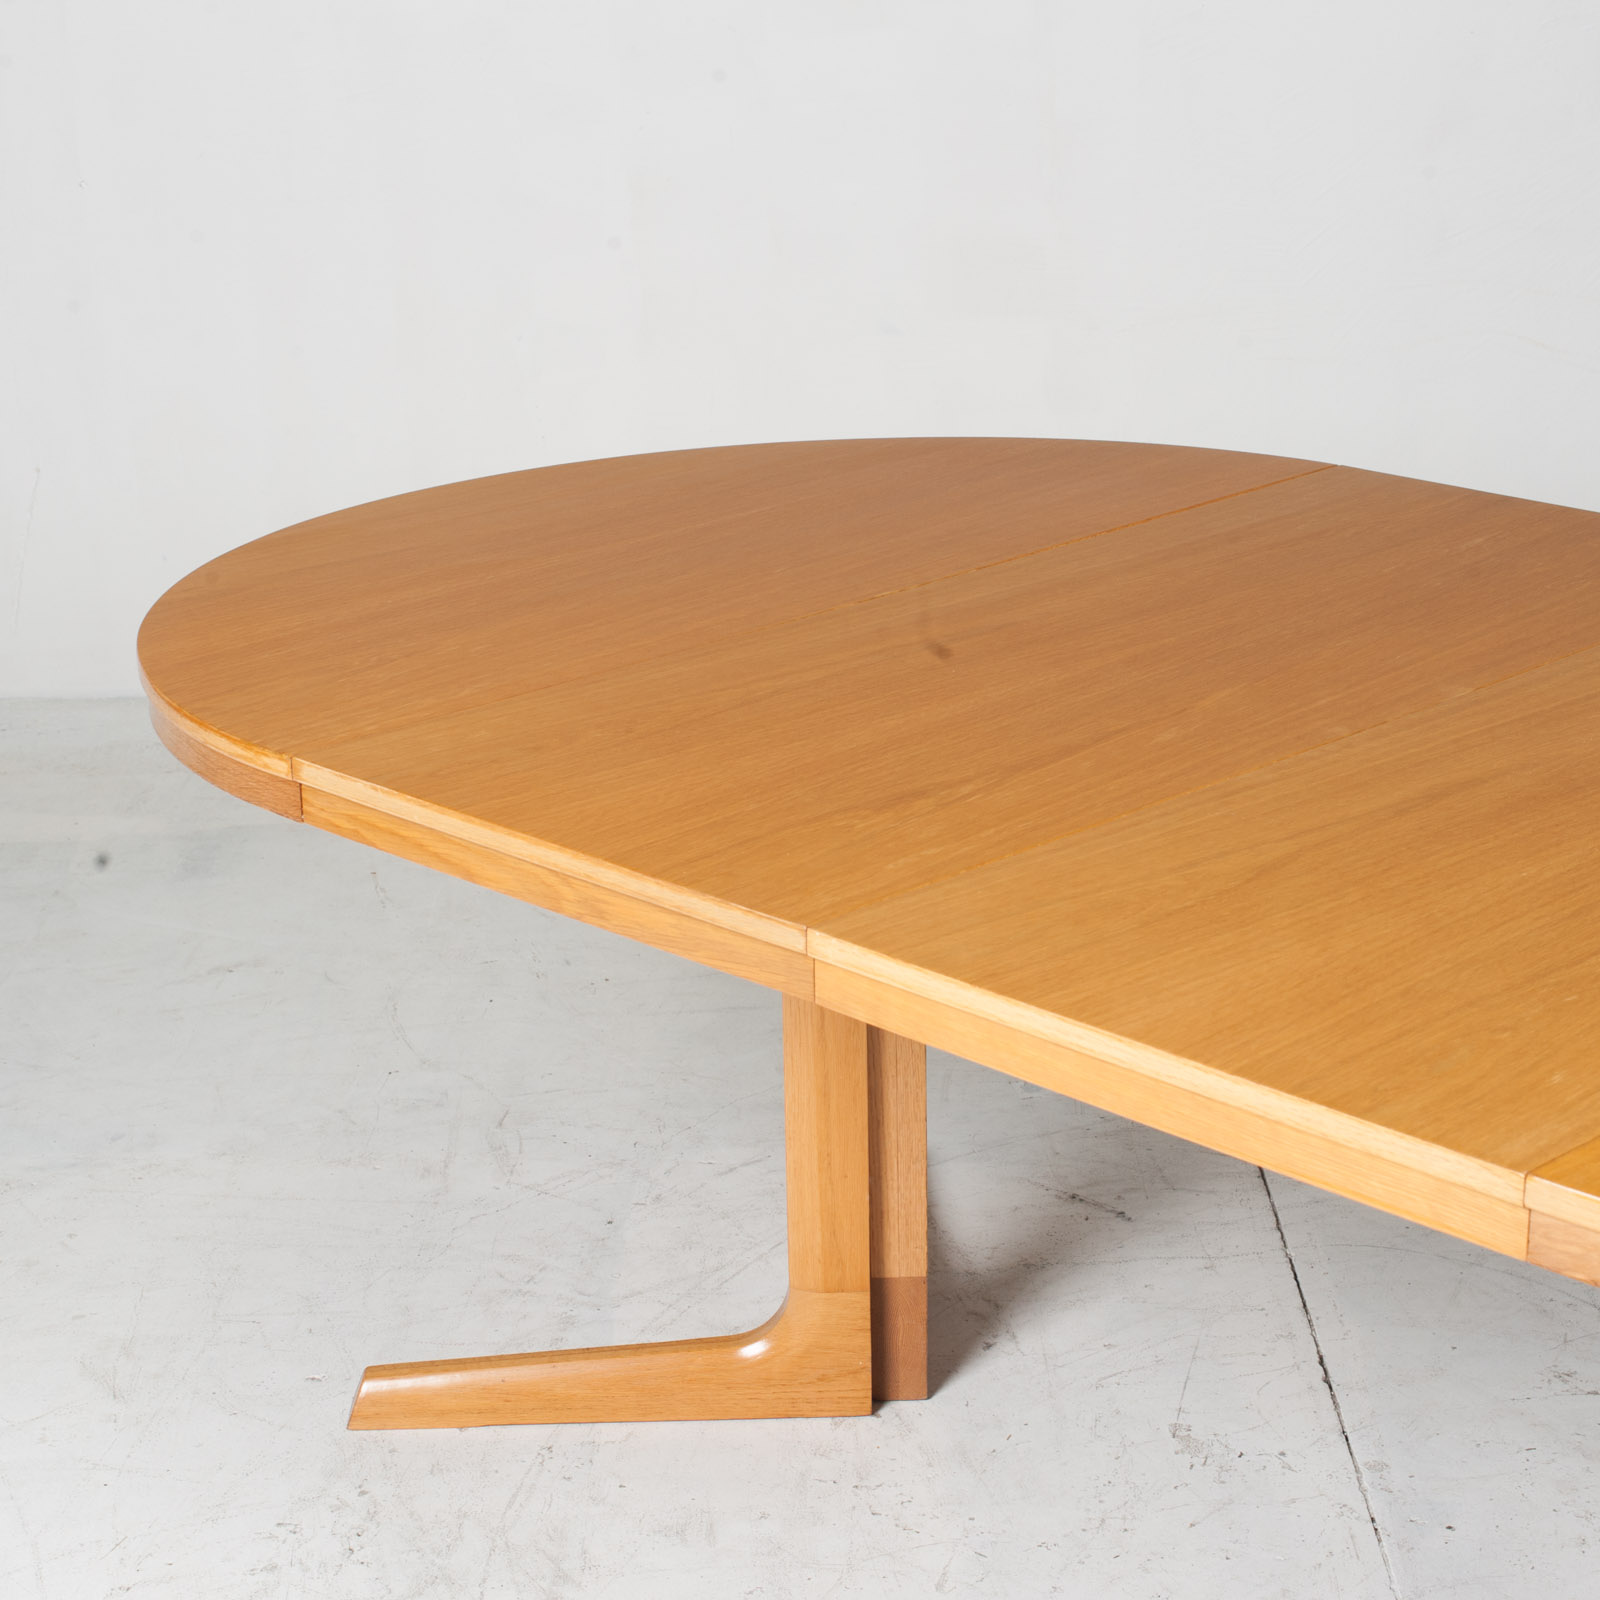 Round Dining Table In Oak With Pedestal Base And 2 Extentions 1960s Denmark 11